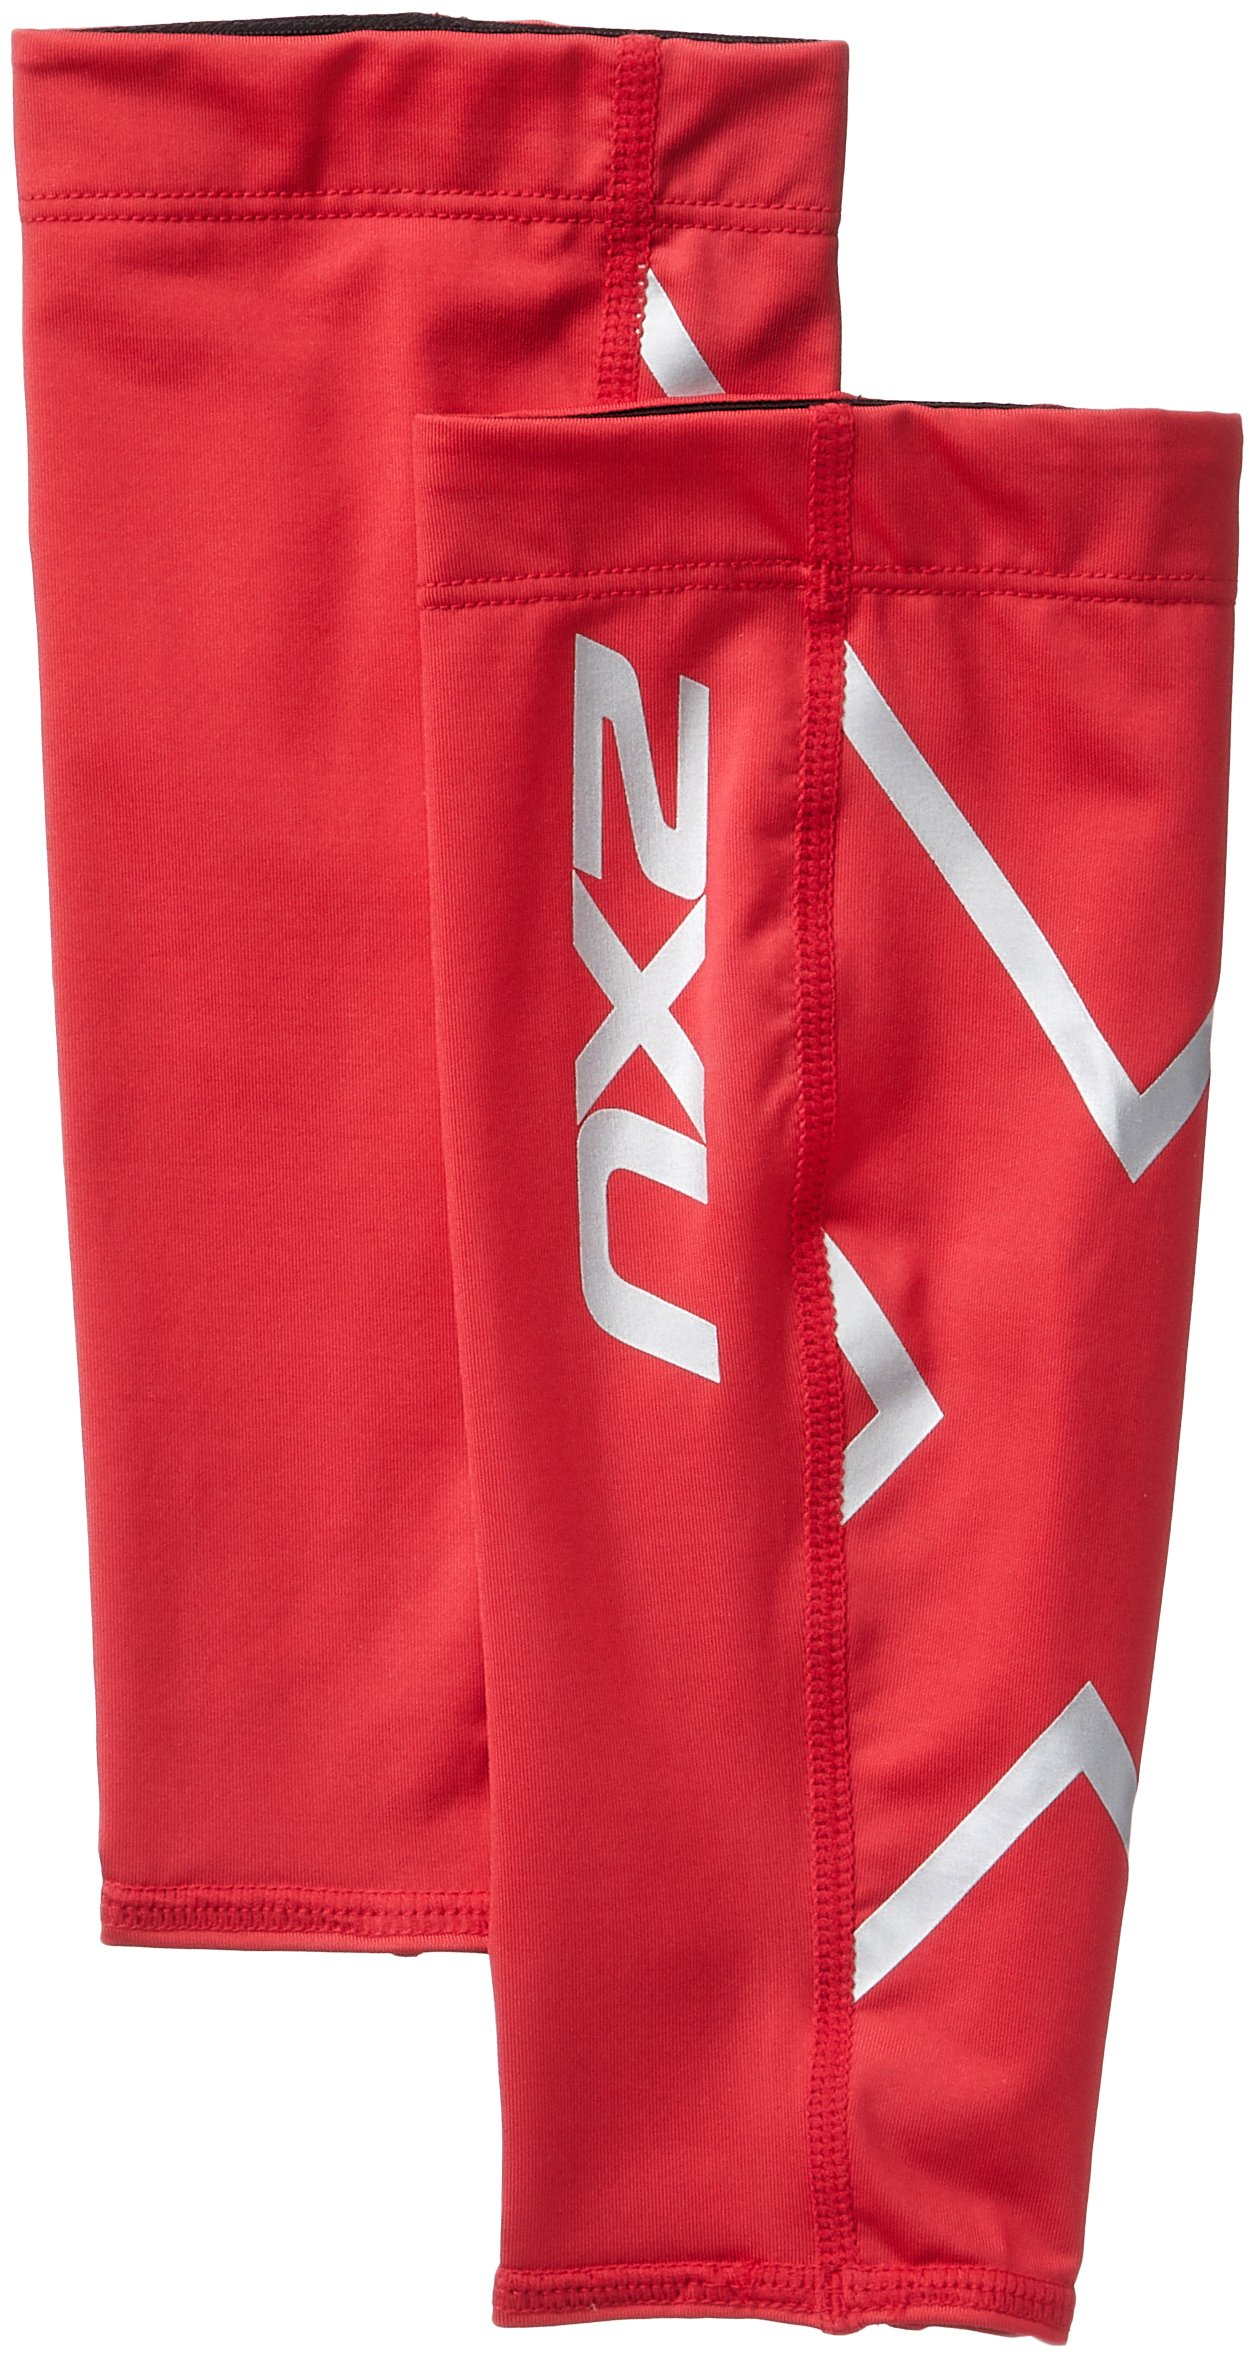 2XU Compression Calf Guards, Red/Red, Small by 2XU